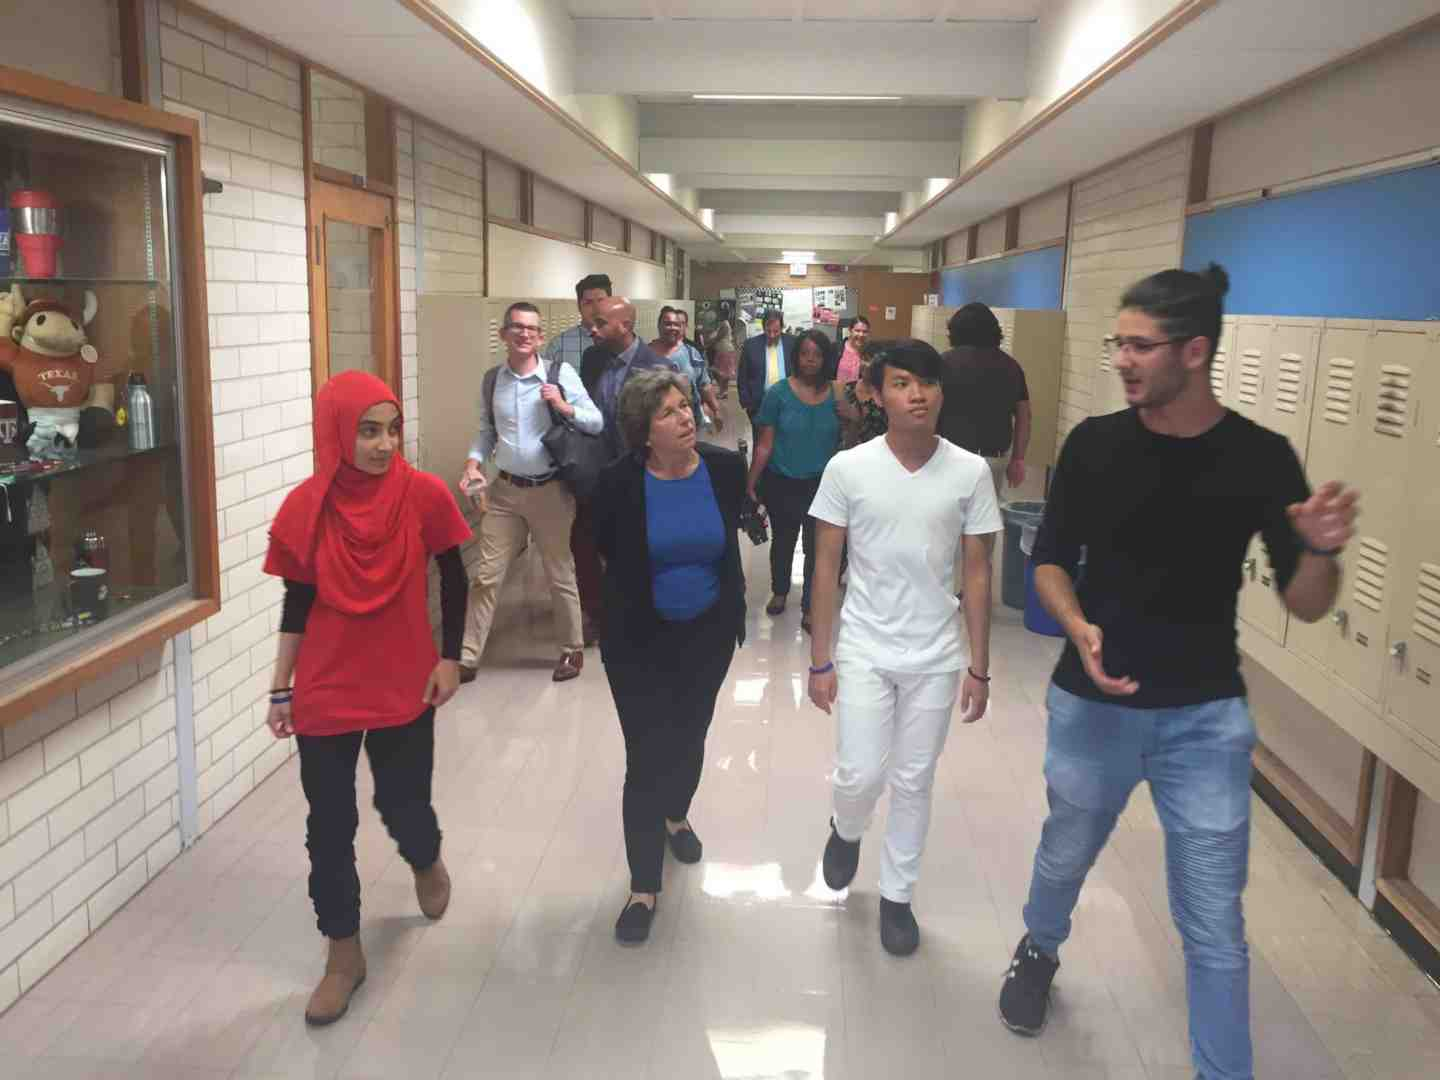 Weingarten with immigrants students in Austin